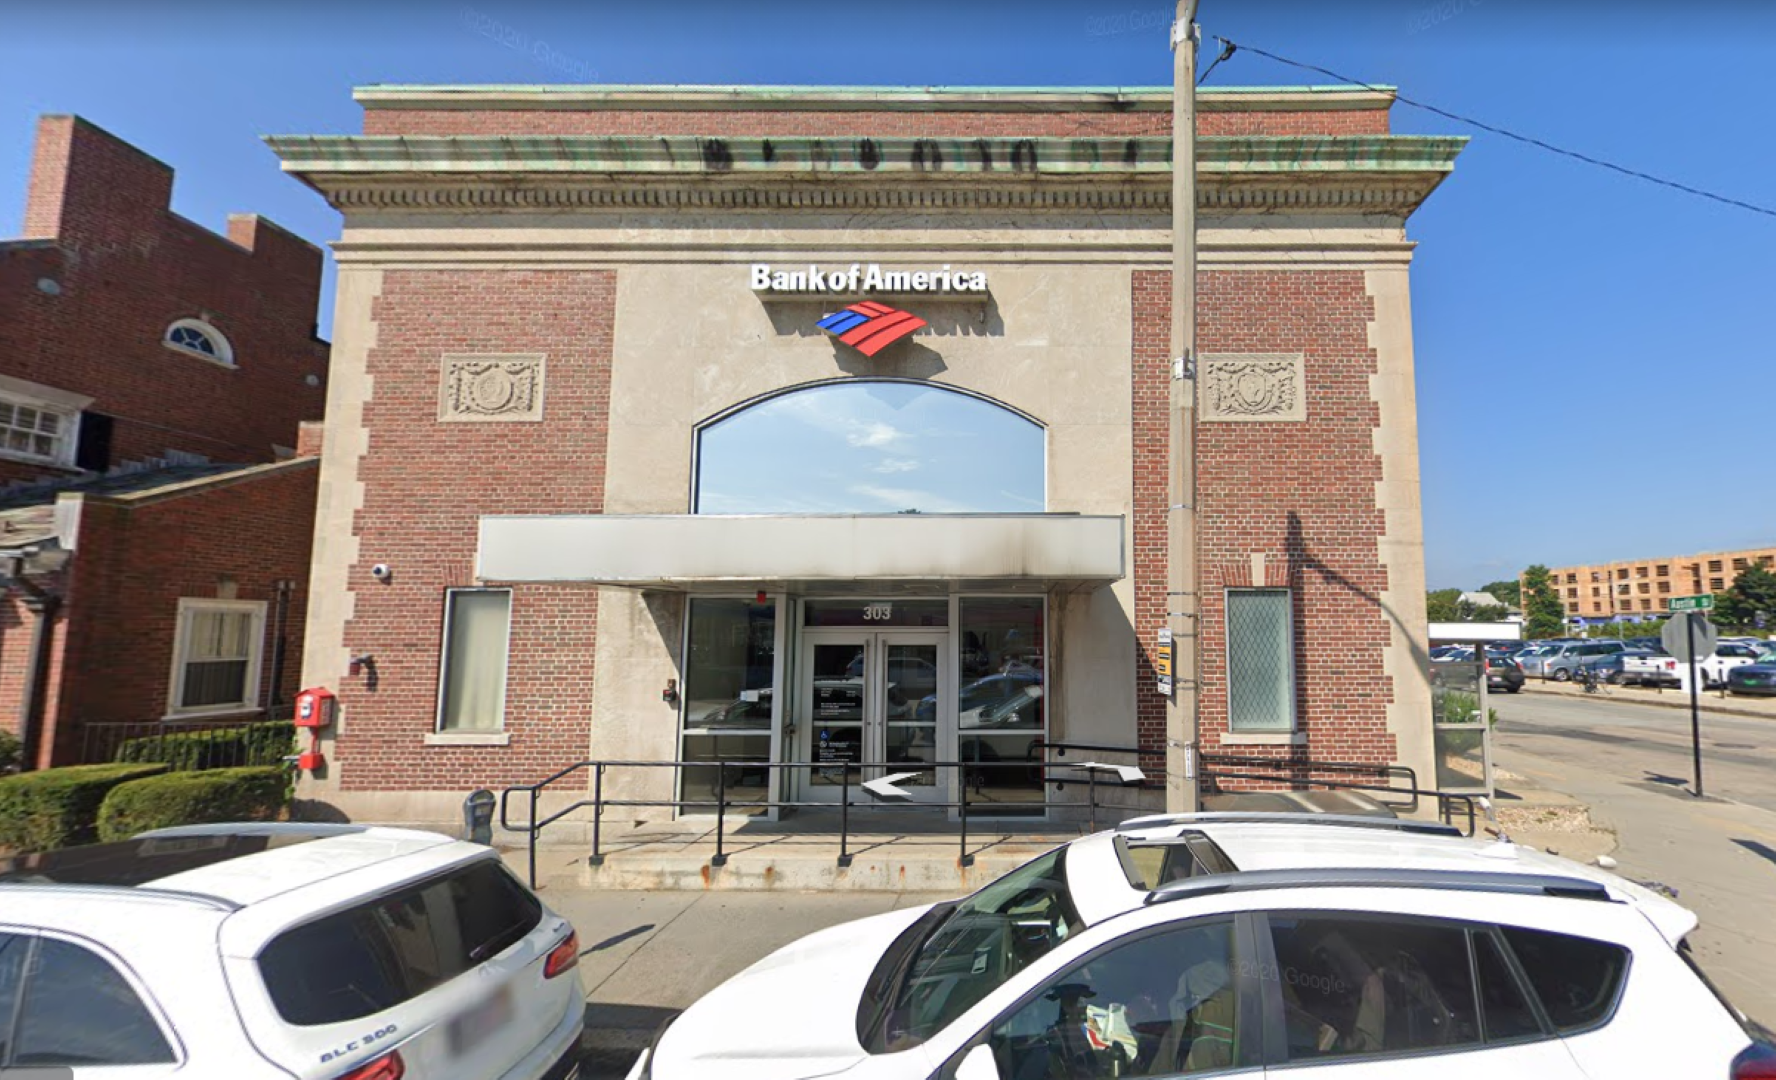 Bank of America financial center with walk-up ATM   303 Walnut St, Newton, MA 02460